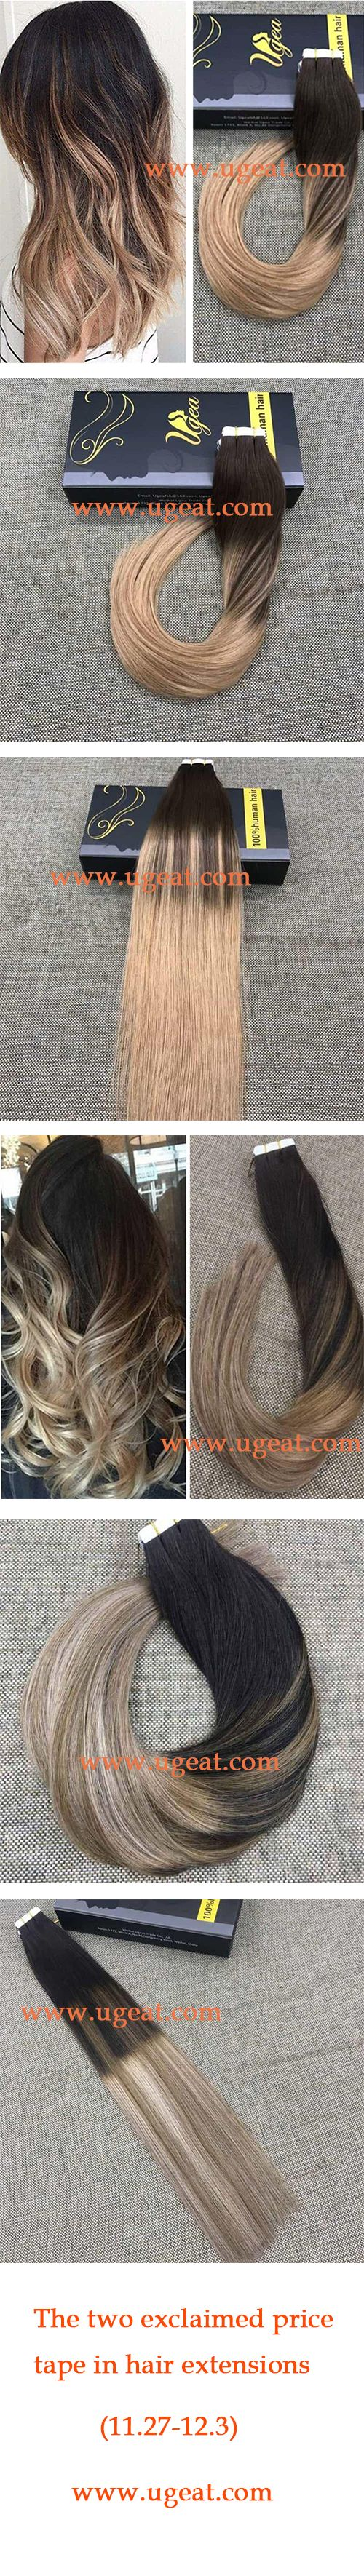 25 trending hair extensions before and after ideas on pinterest the exclaimed price human tape in hair extensions from short hair to long hair with pmusecretfo Gallery